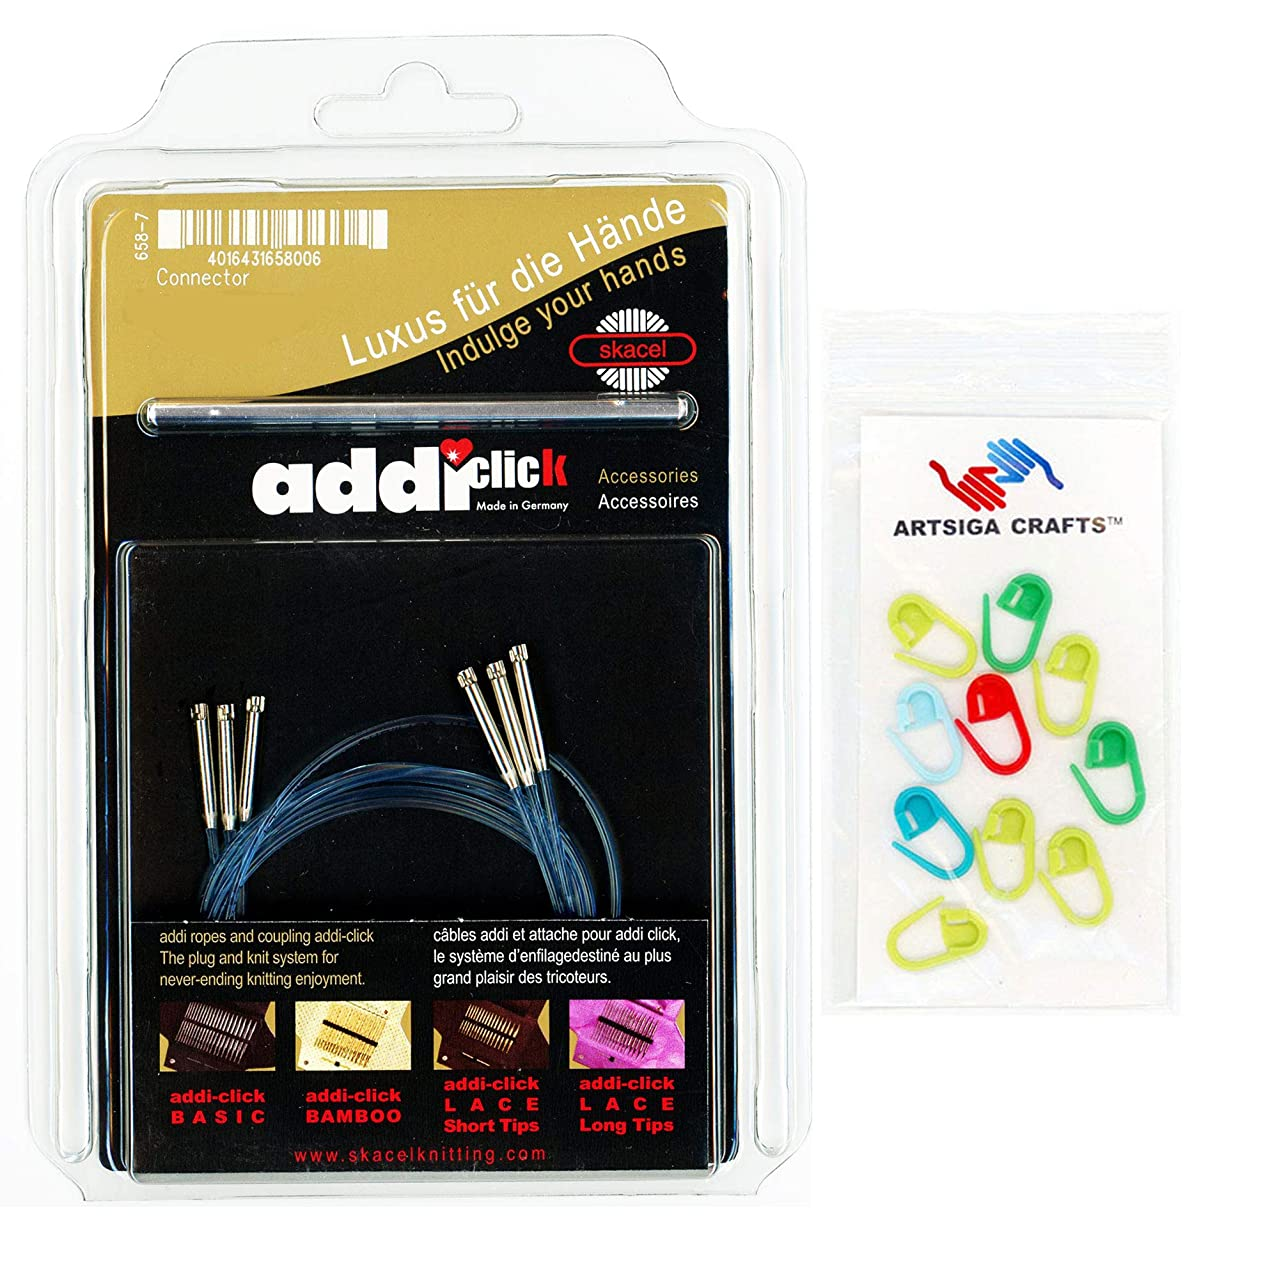 addi Knitting Needle Click Turbo Basic Set Interchangeable Skacel Exclusive Blue Cord 24 inch (60cm) 3 Pack with Connector Bundle with 10 Artsiga Crafts Stitch Markers